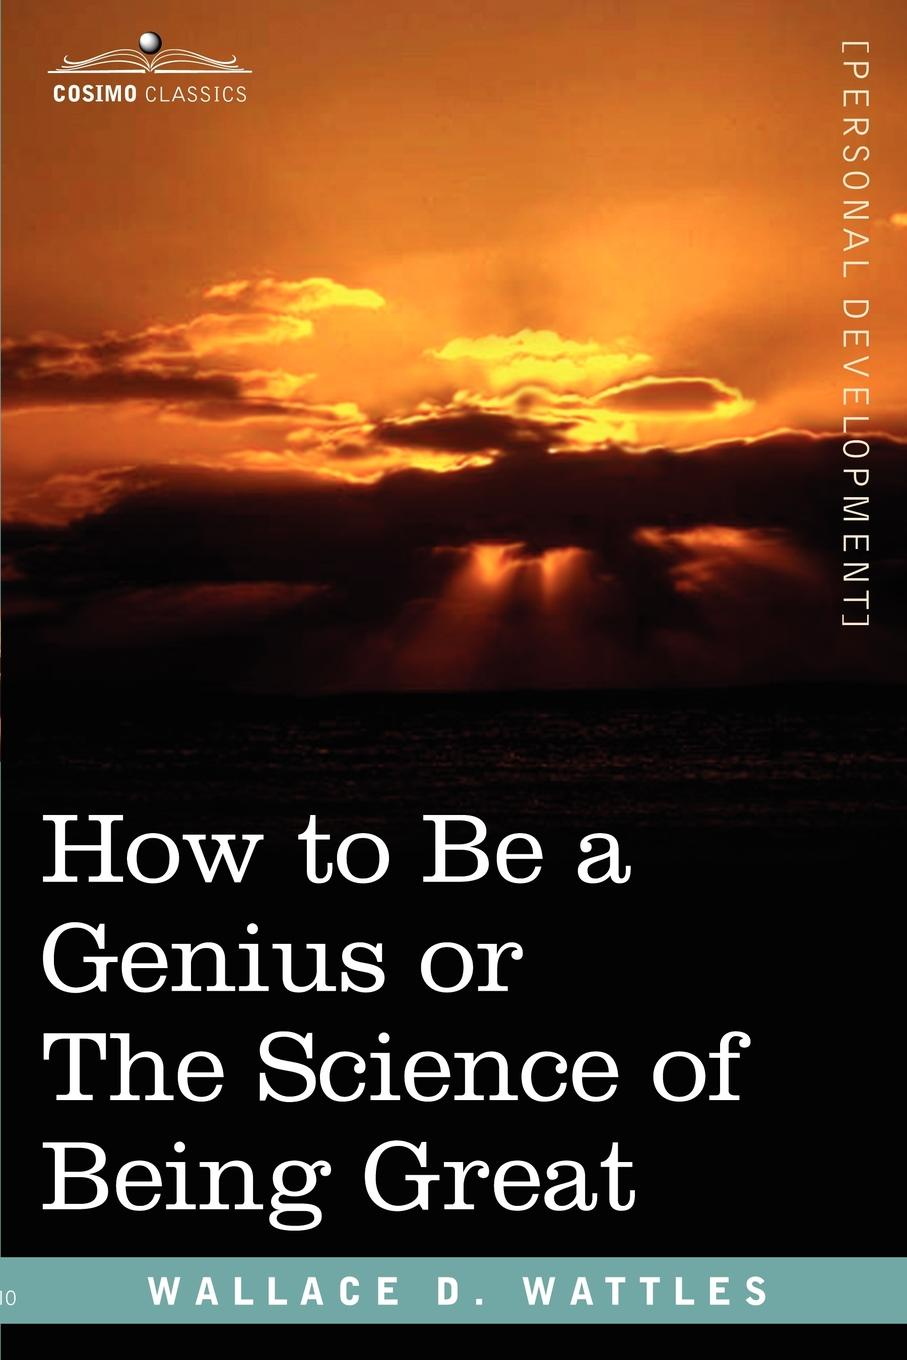 Wallace D. Wattles How to Be a Genius or the Science of Being Great fergus o connell earn more stress less how to attract wealth using the secret science of getting rich your practical guide to living the law of attraction